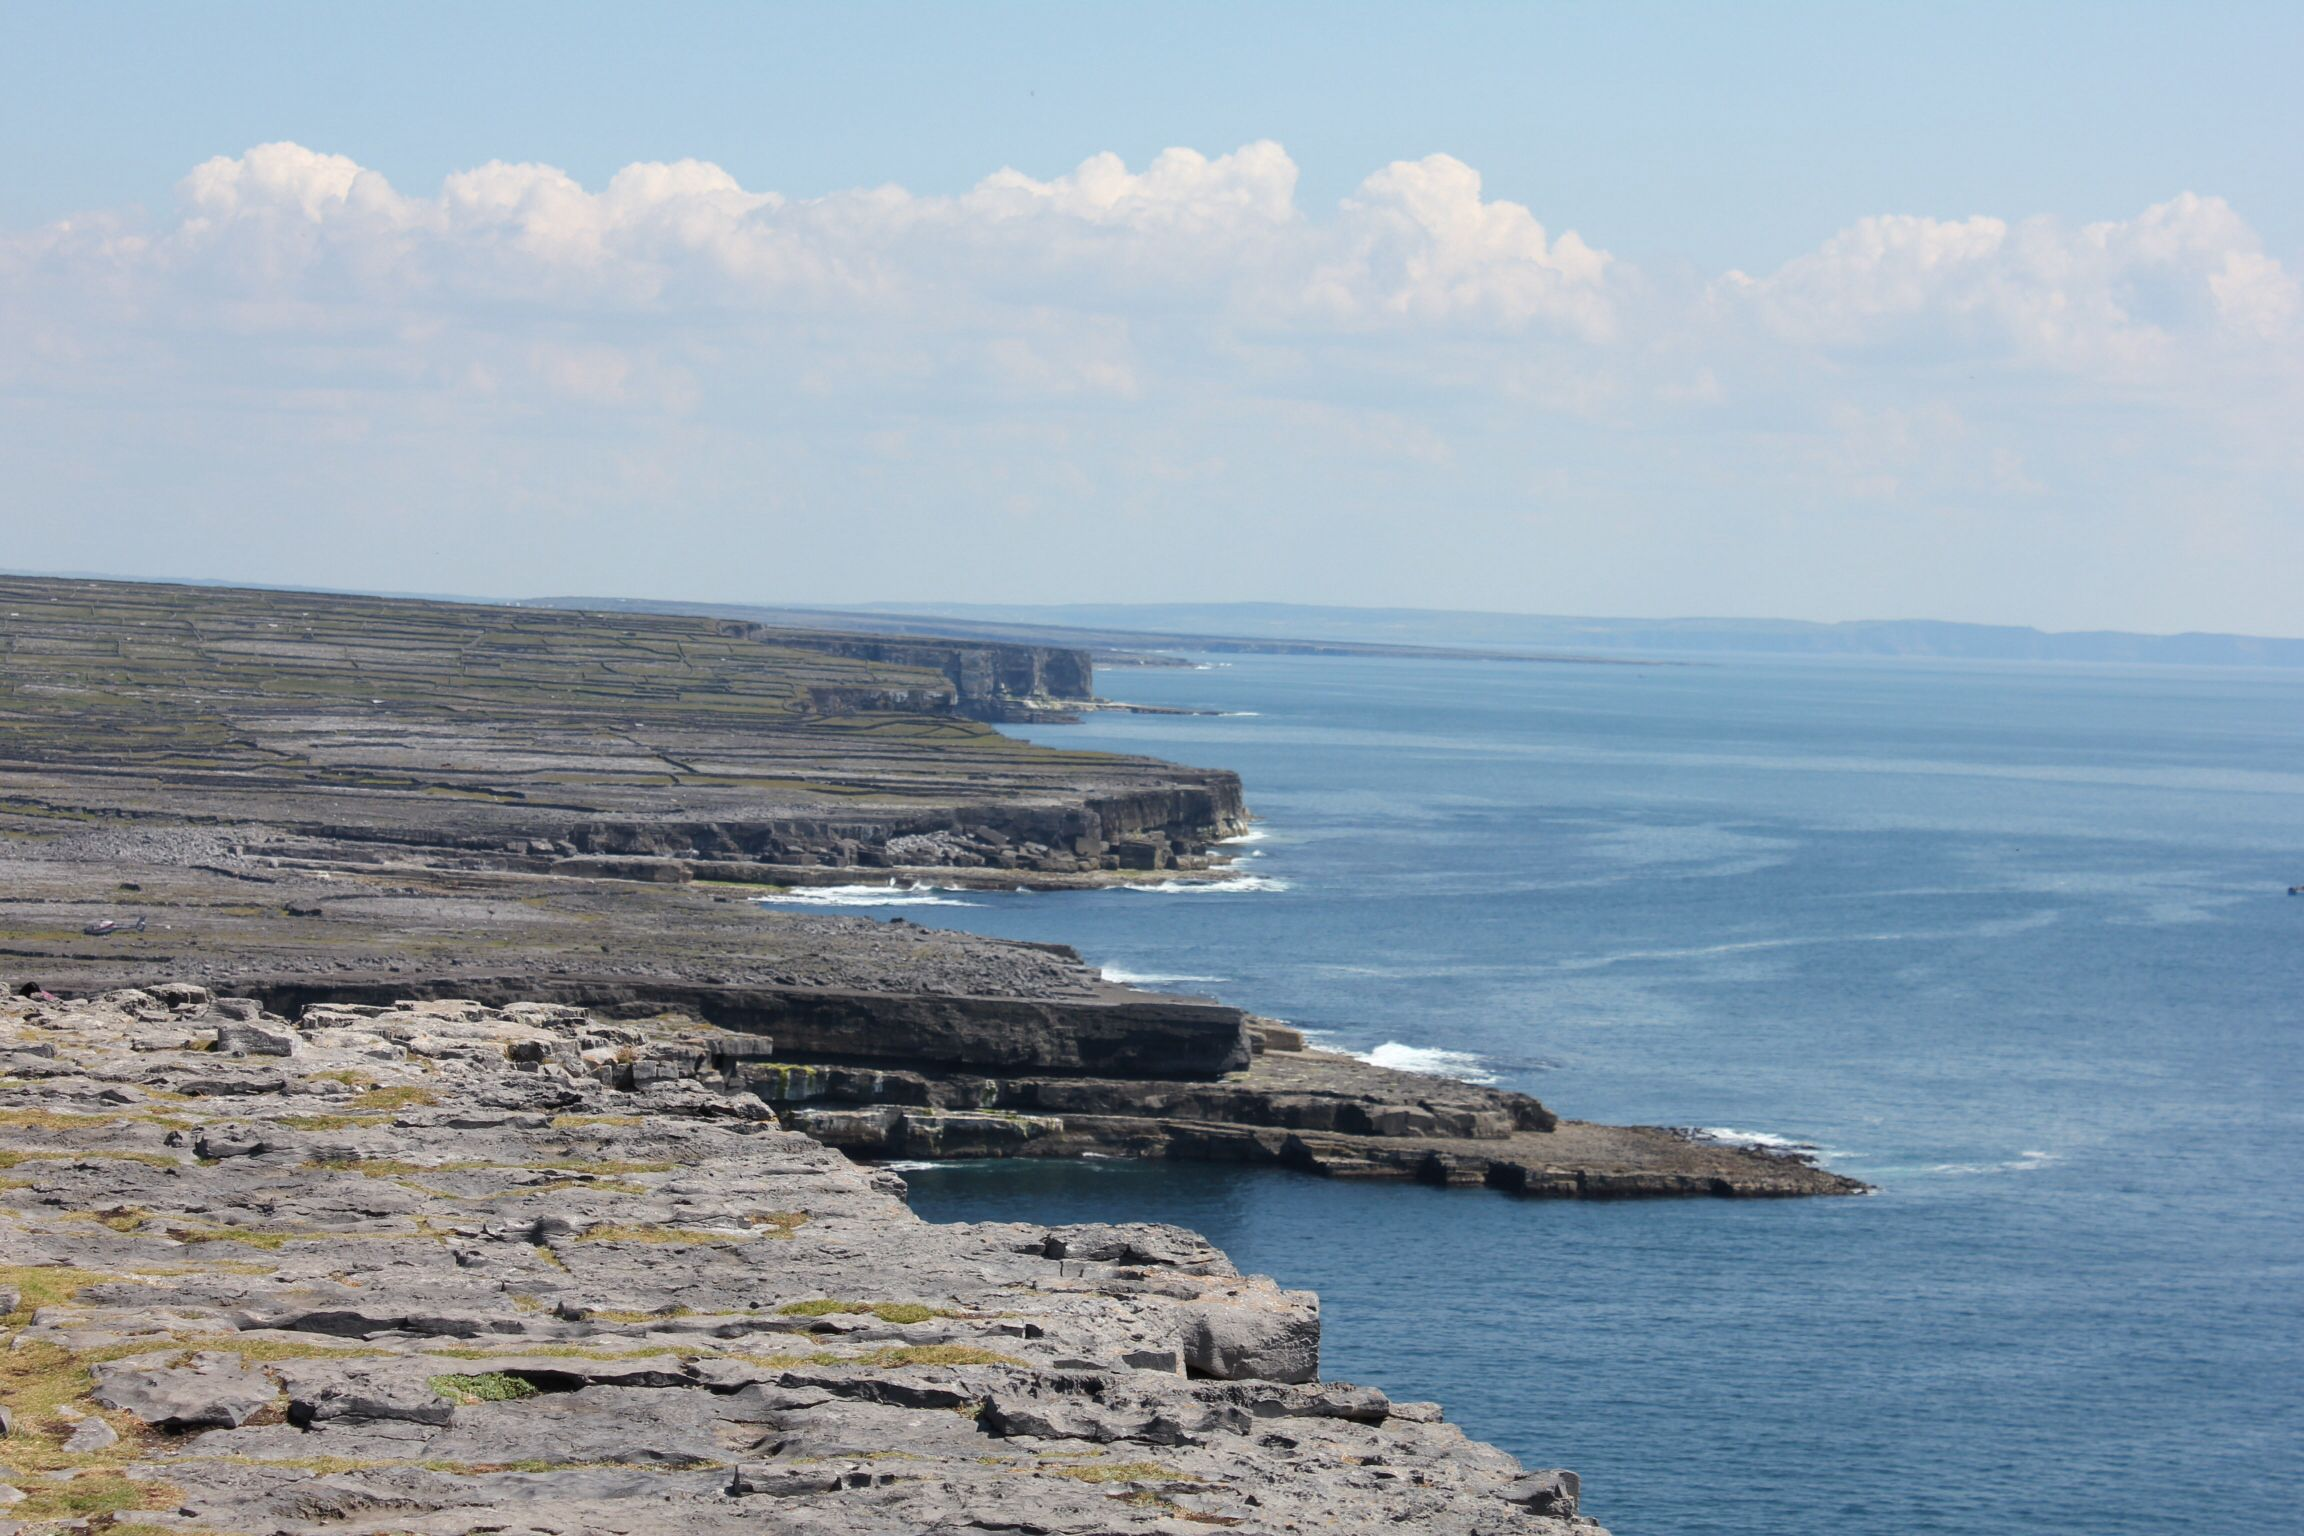 Inis Mor, Aran Islands, Ireland